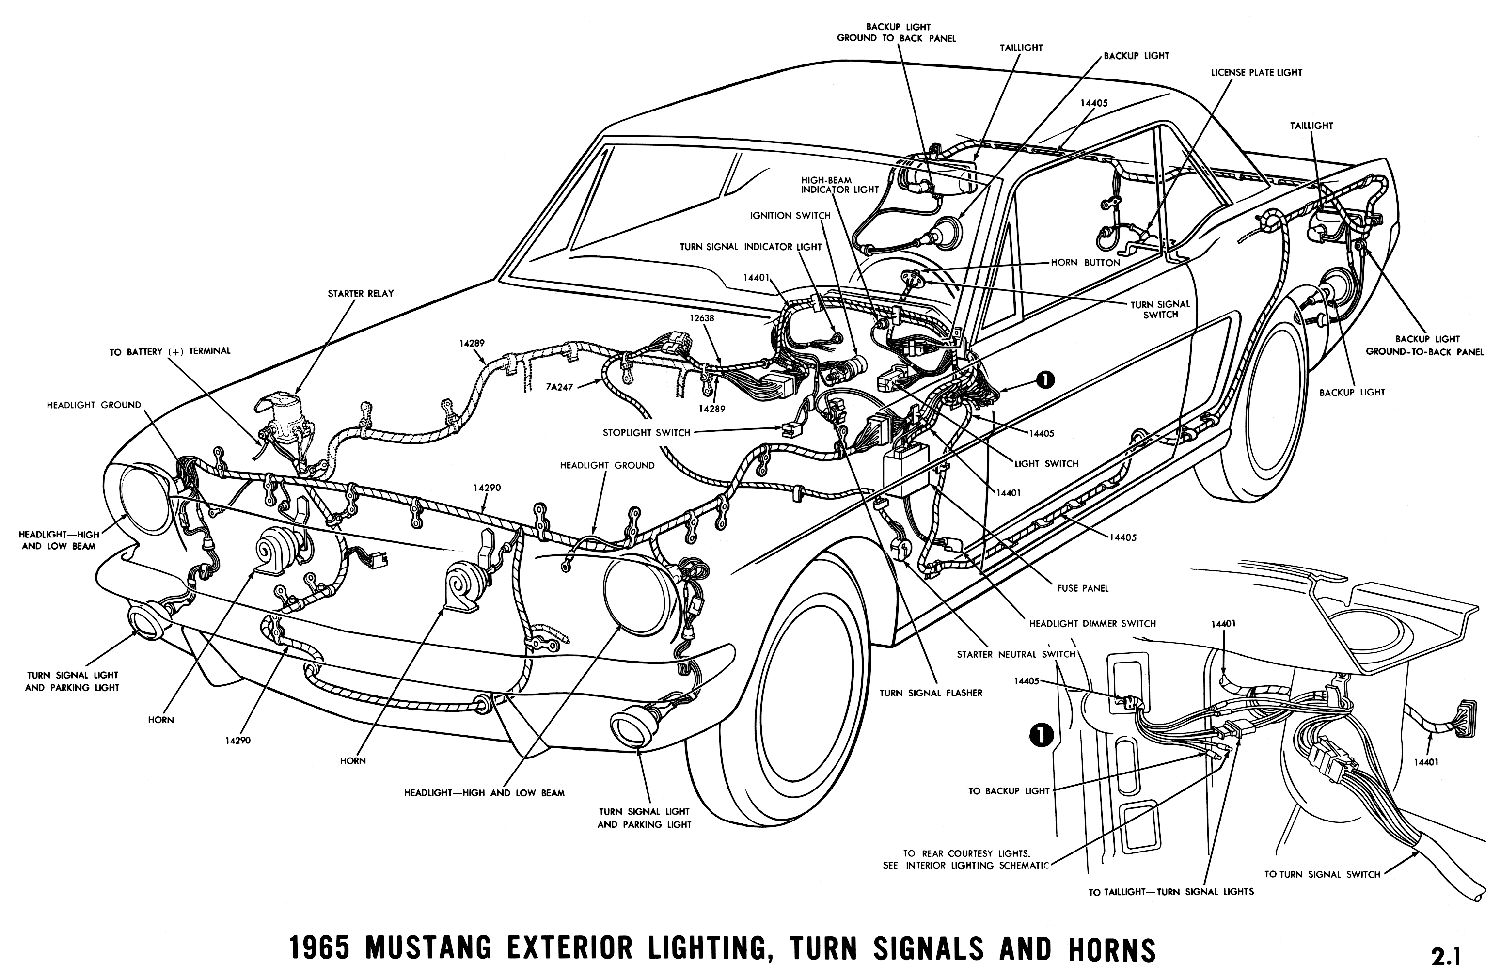 1965 Mustang Wiring Diagrams Average Joe Restoration Ford Tail Light 1965d